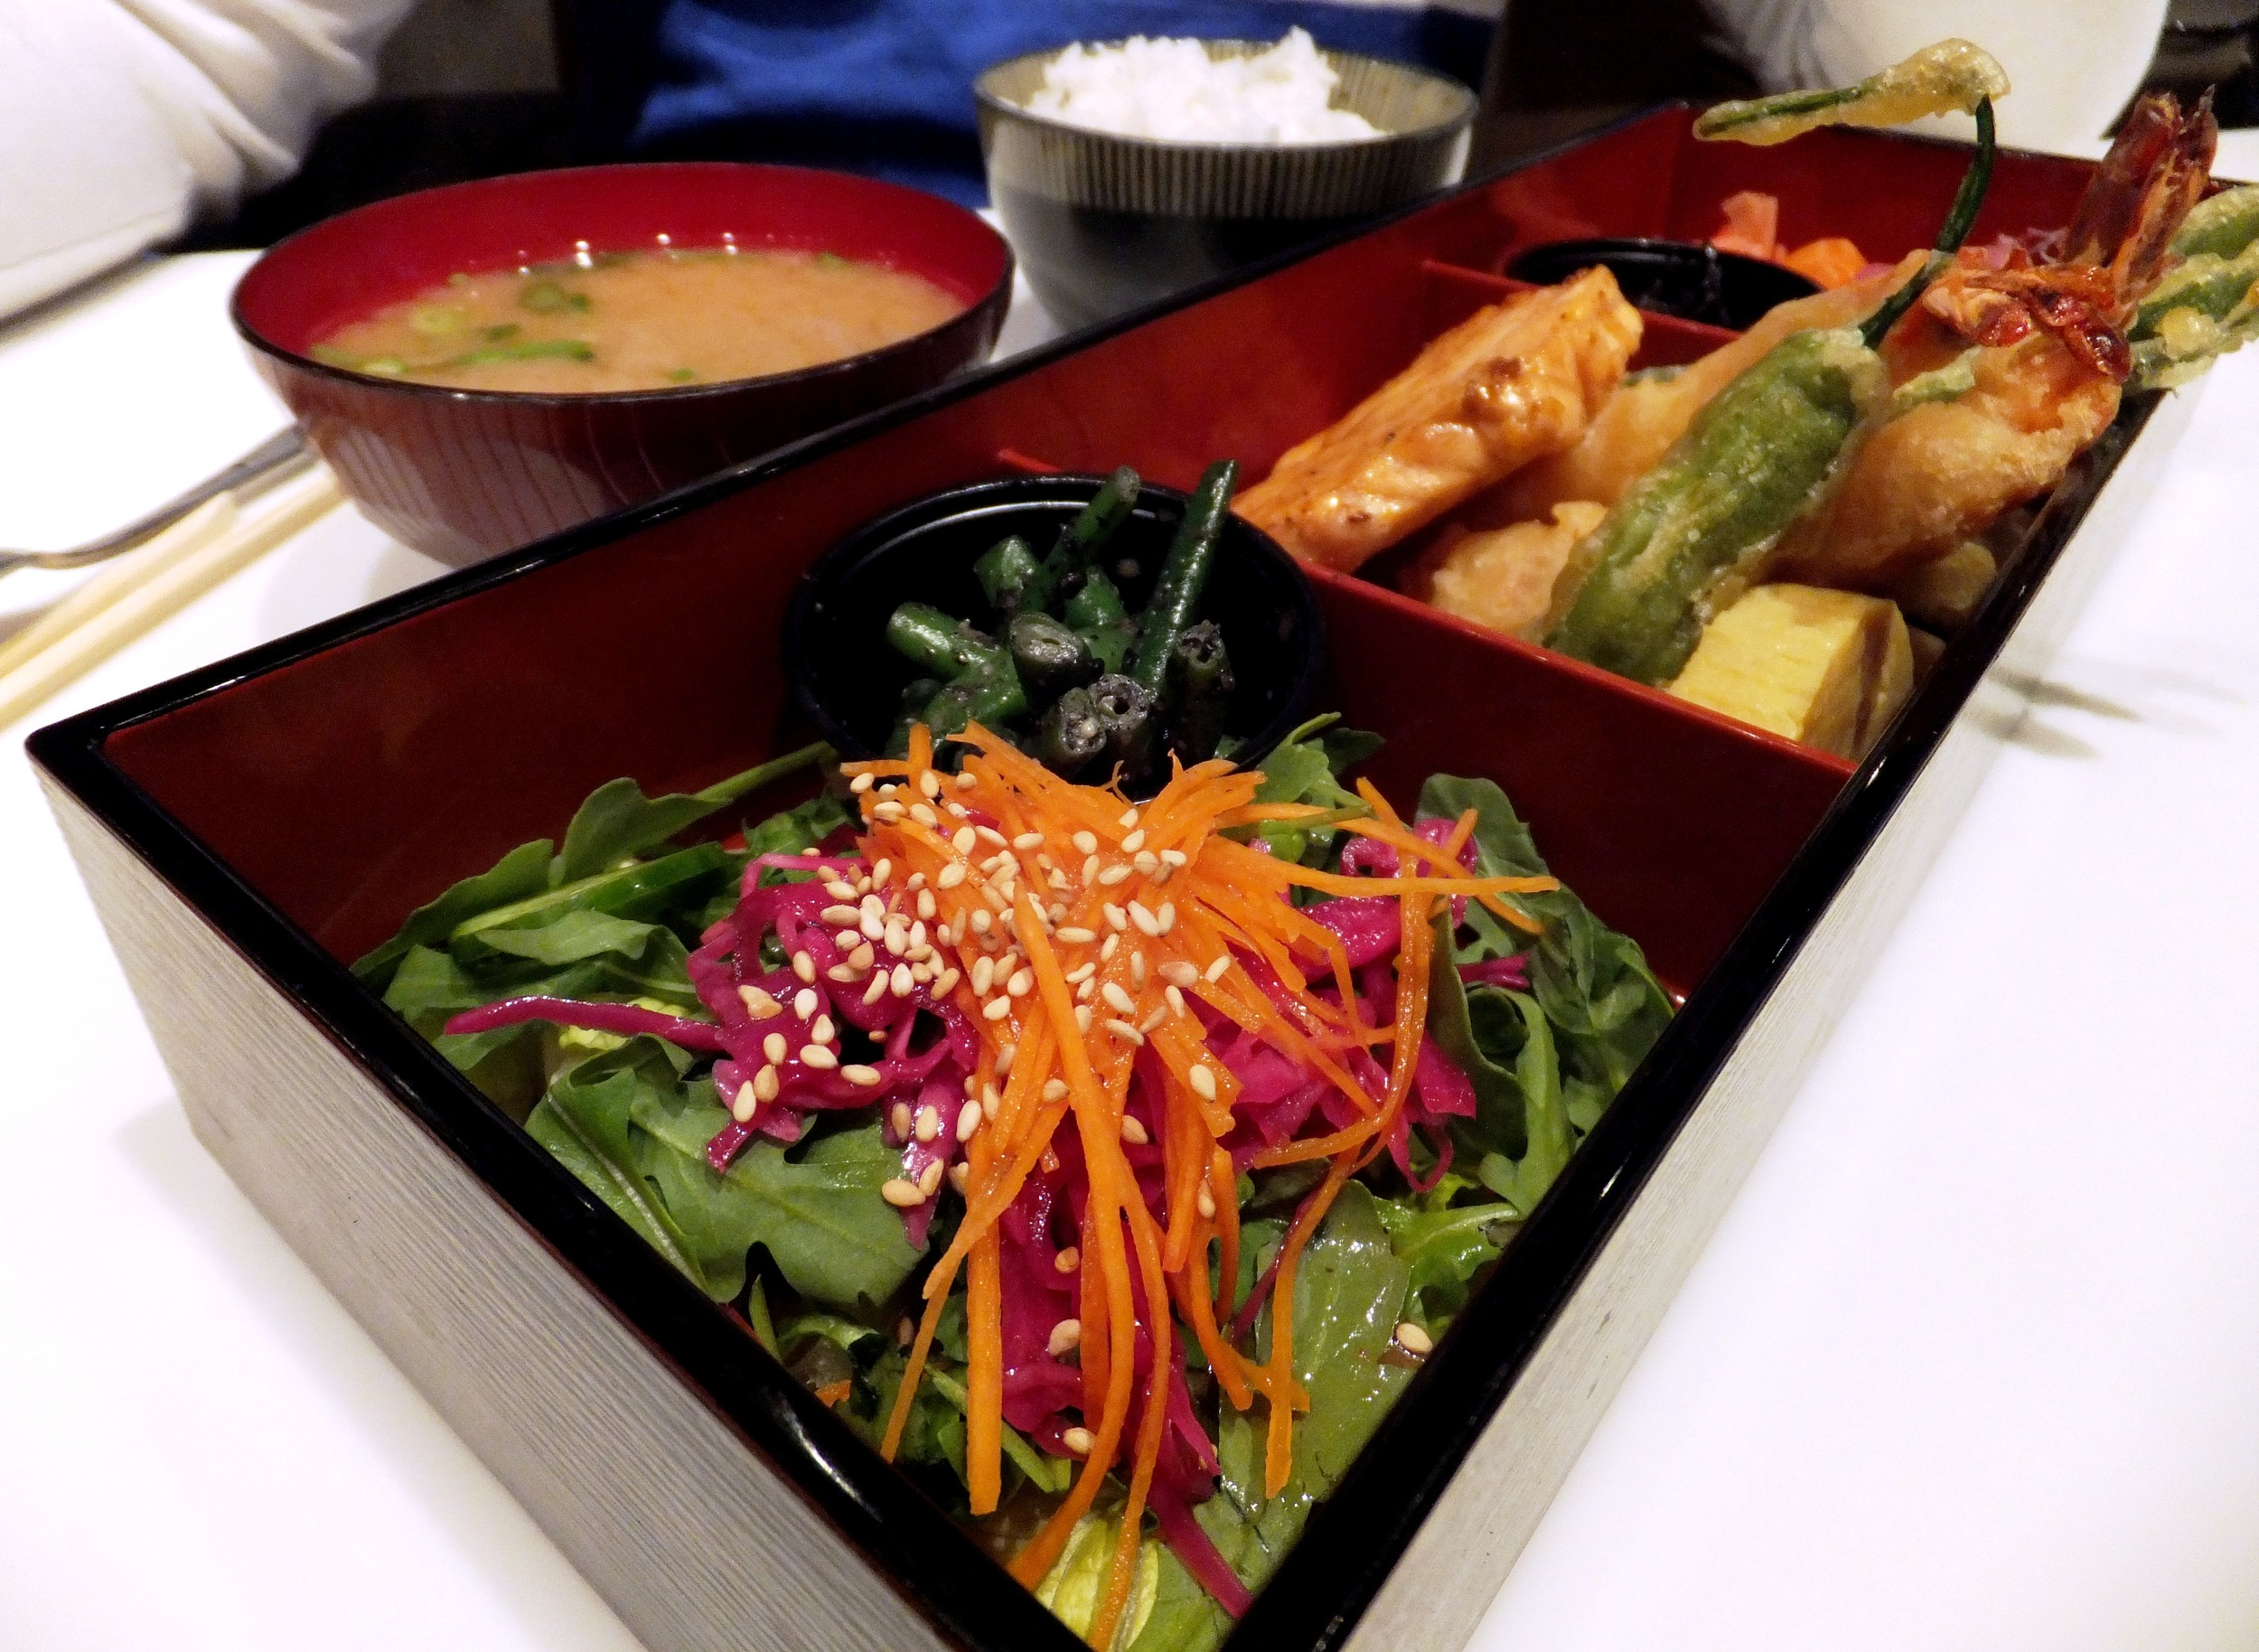 Figure 5. Grilled Salmon Bento Box